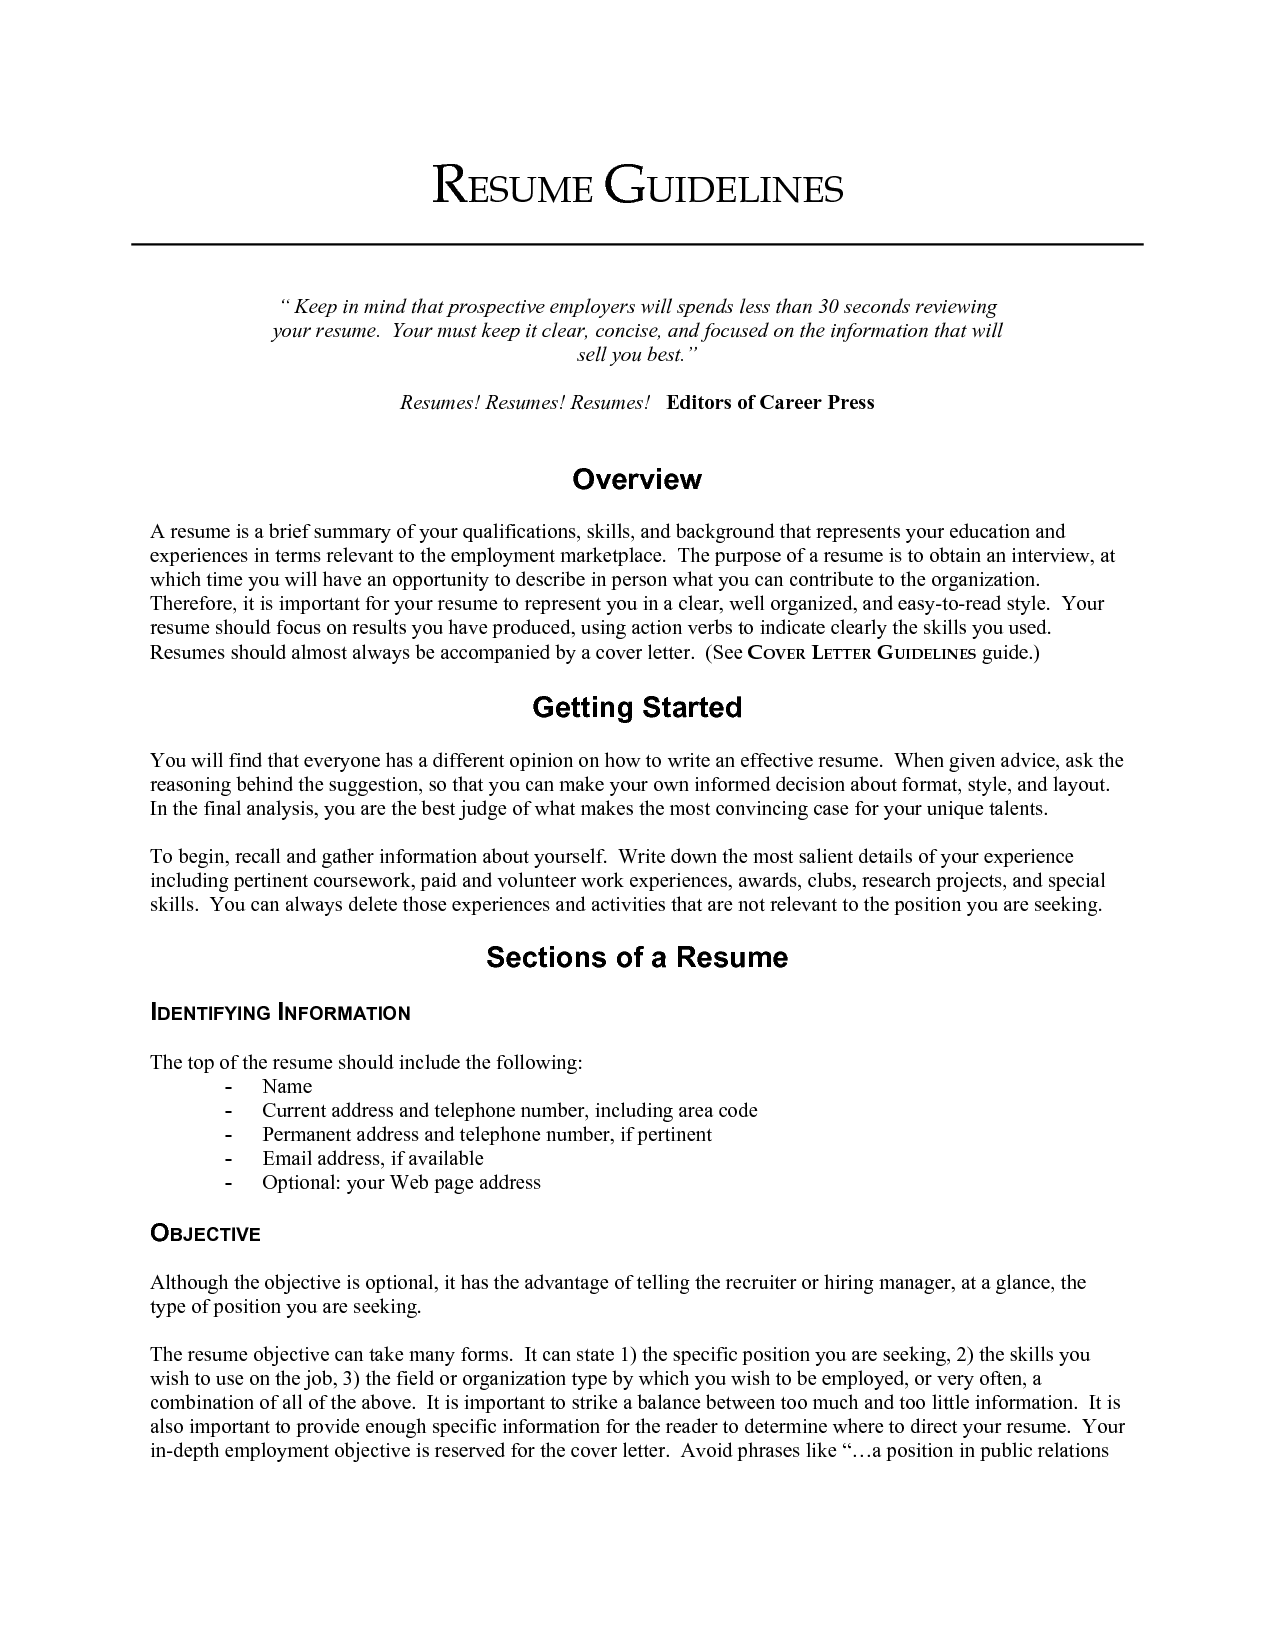 Basic Objective For Resume Objective Lines On Resumes Resume Builderresume Objective Examples